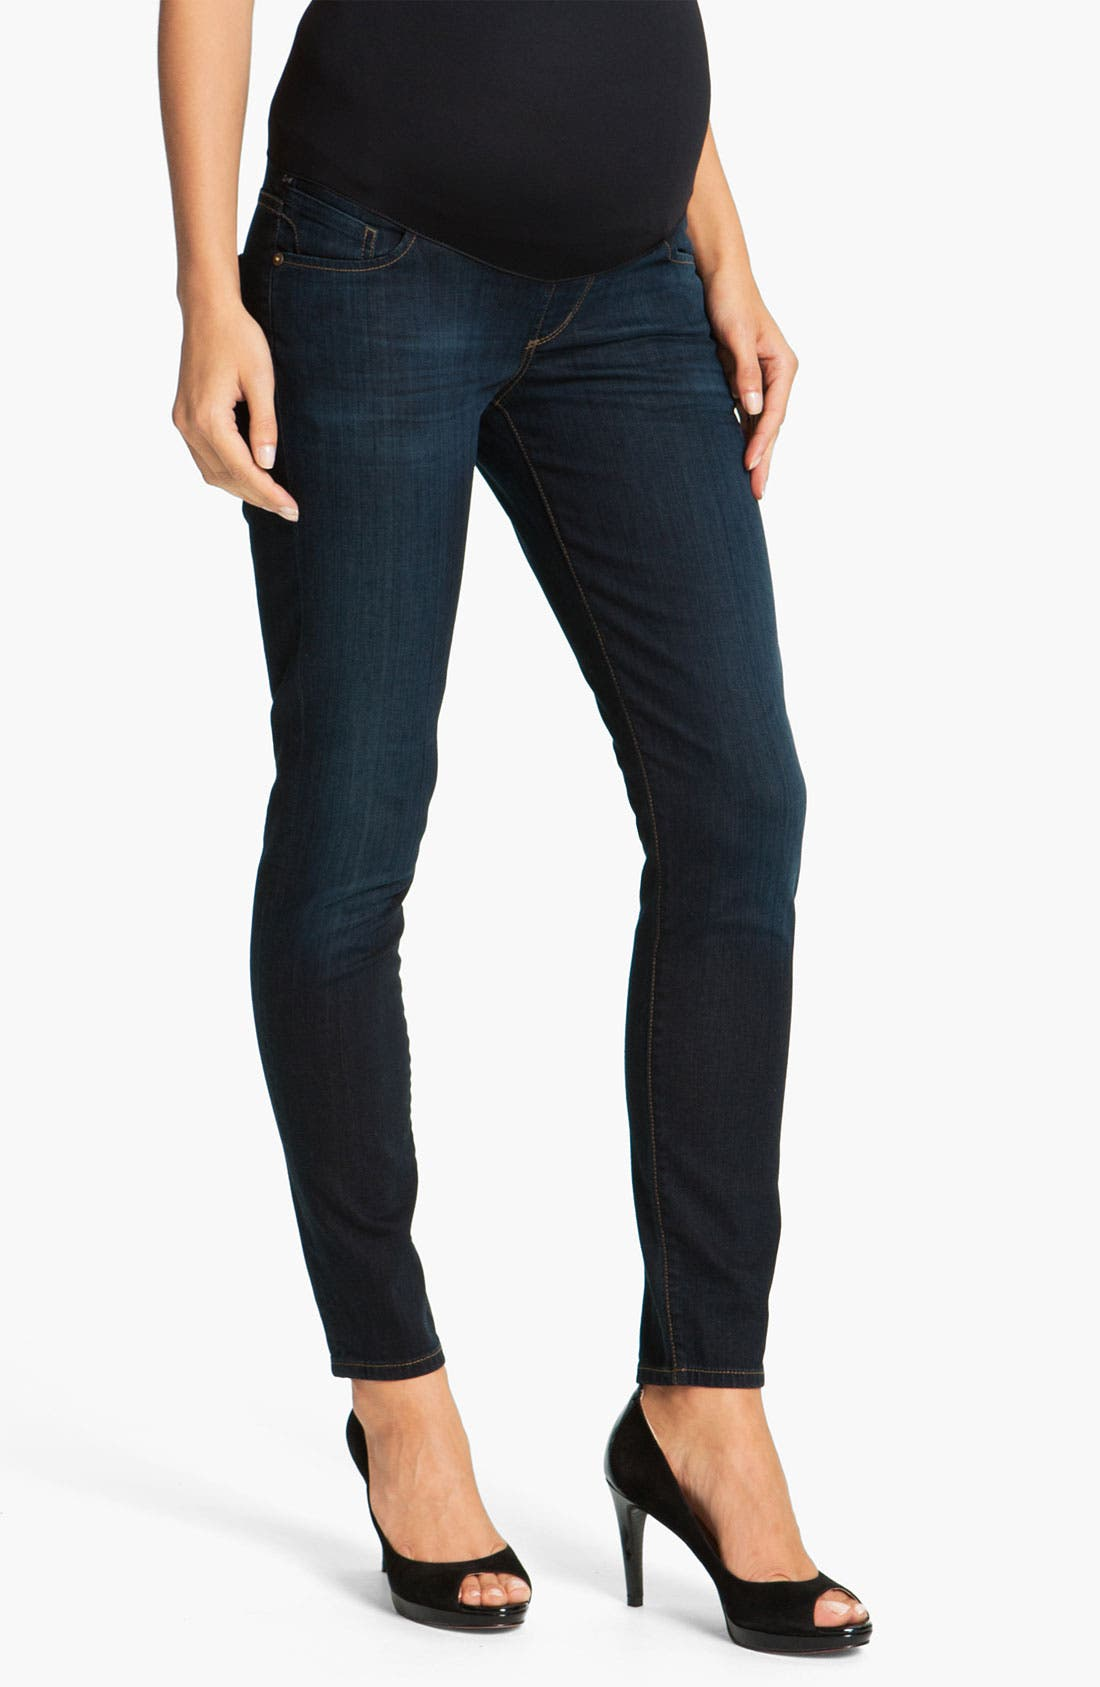 Main Image - Citizens of Humanity 'Ava' Maternity Straight Leg Jeans (Faith)